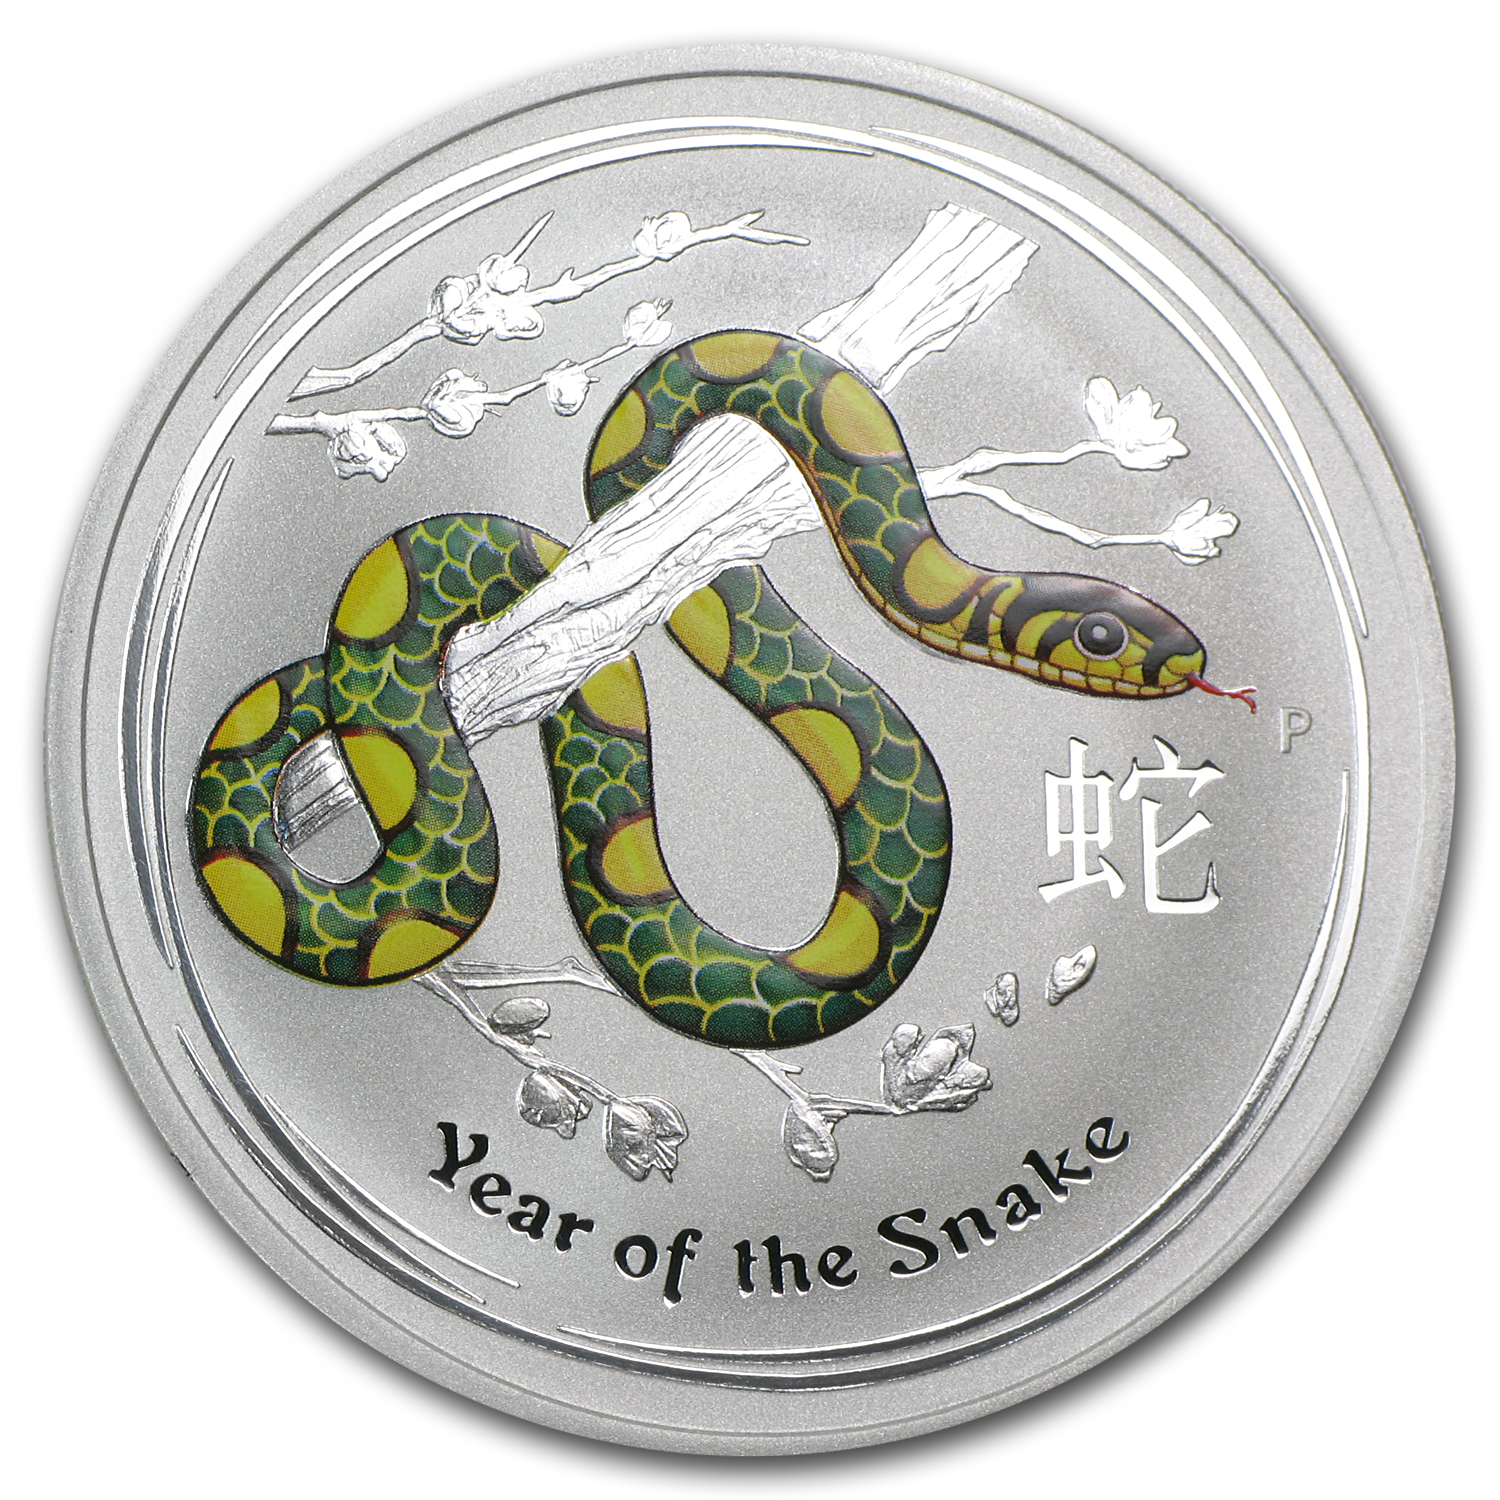 2013 1 oz Silver Snake World Money Fair BU (Berlin, Colorized)